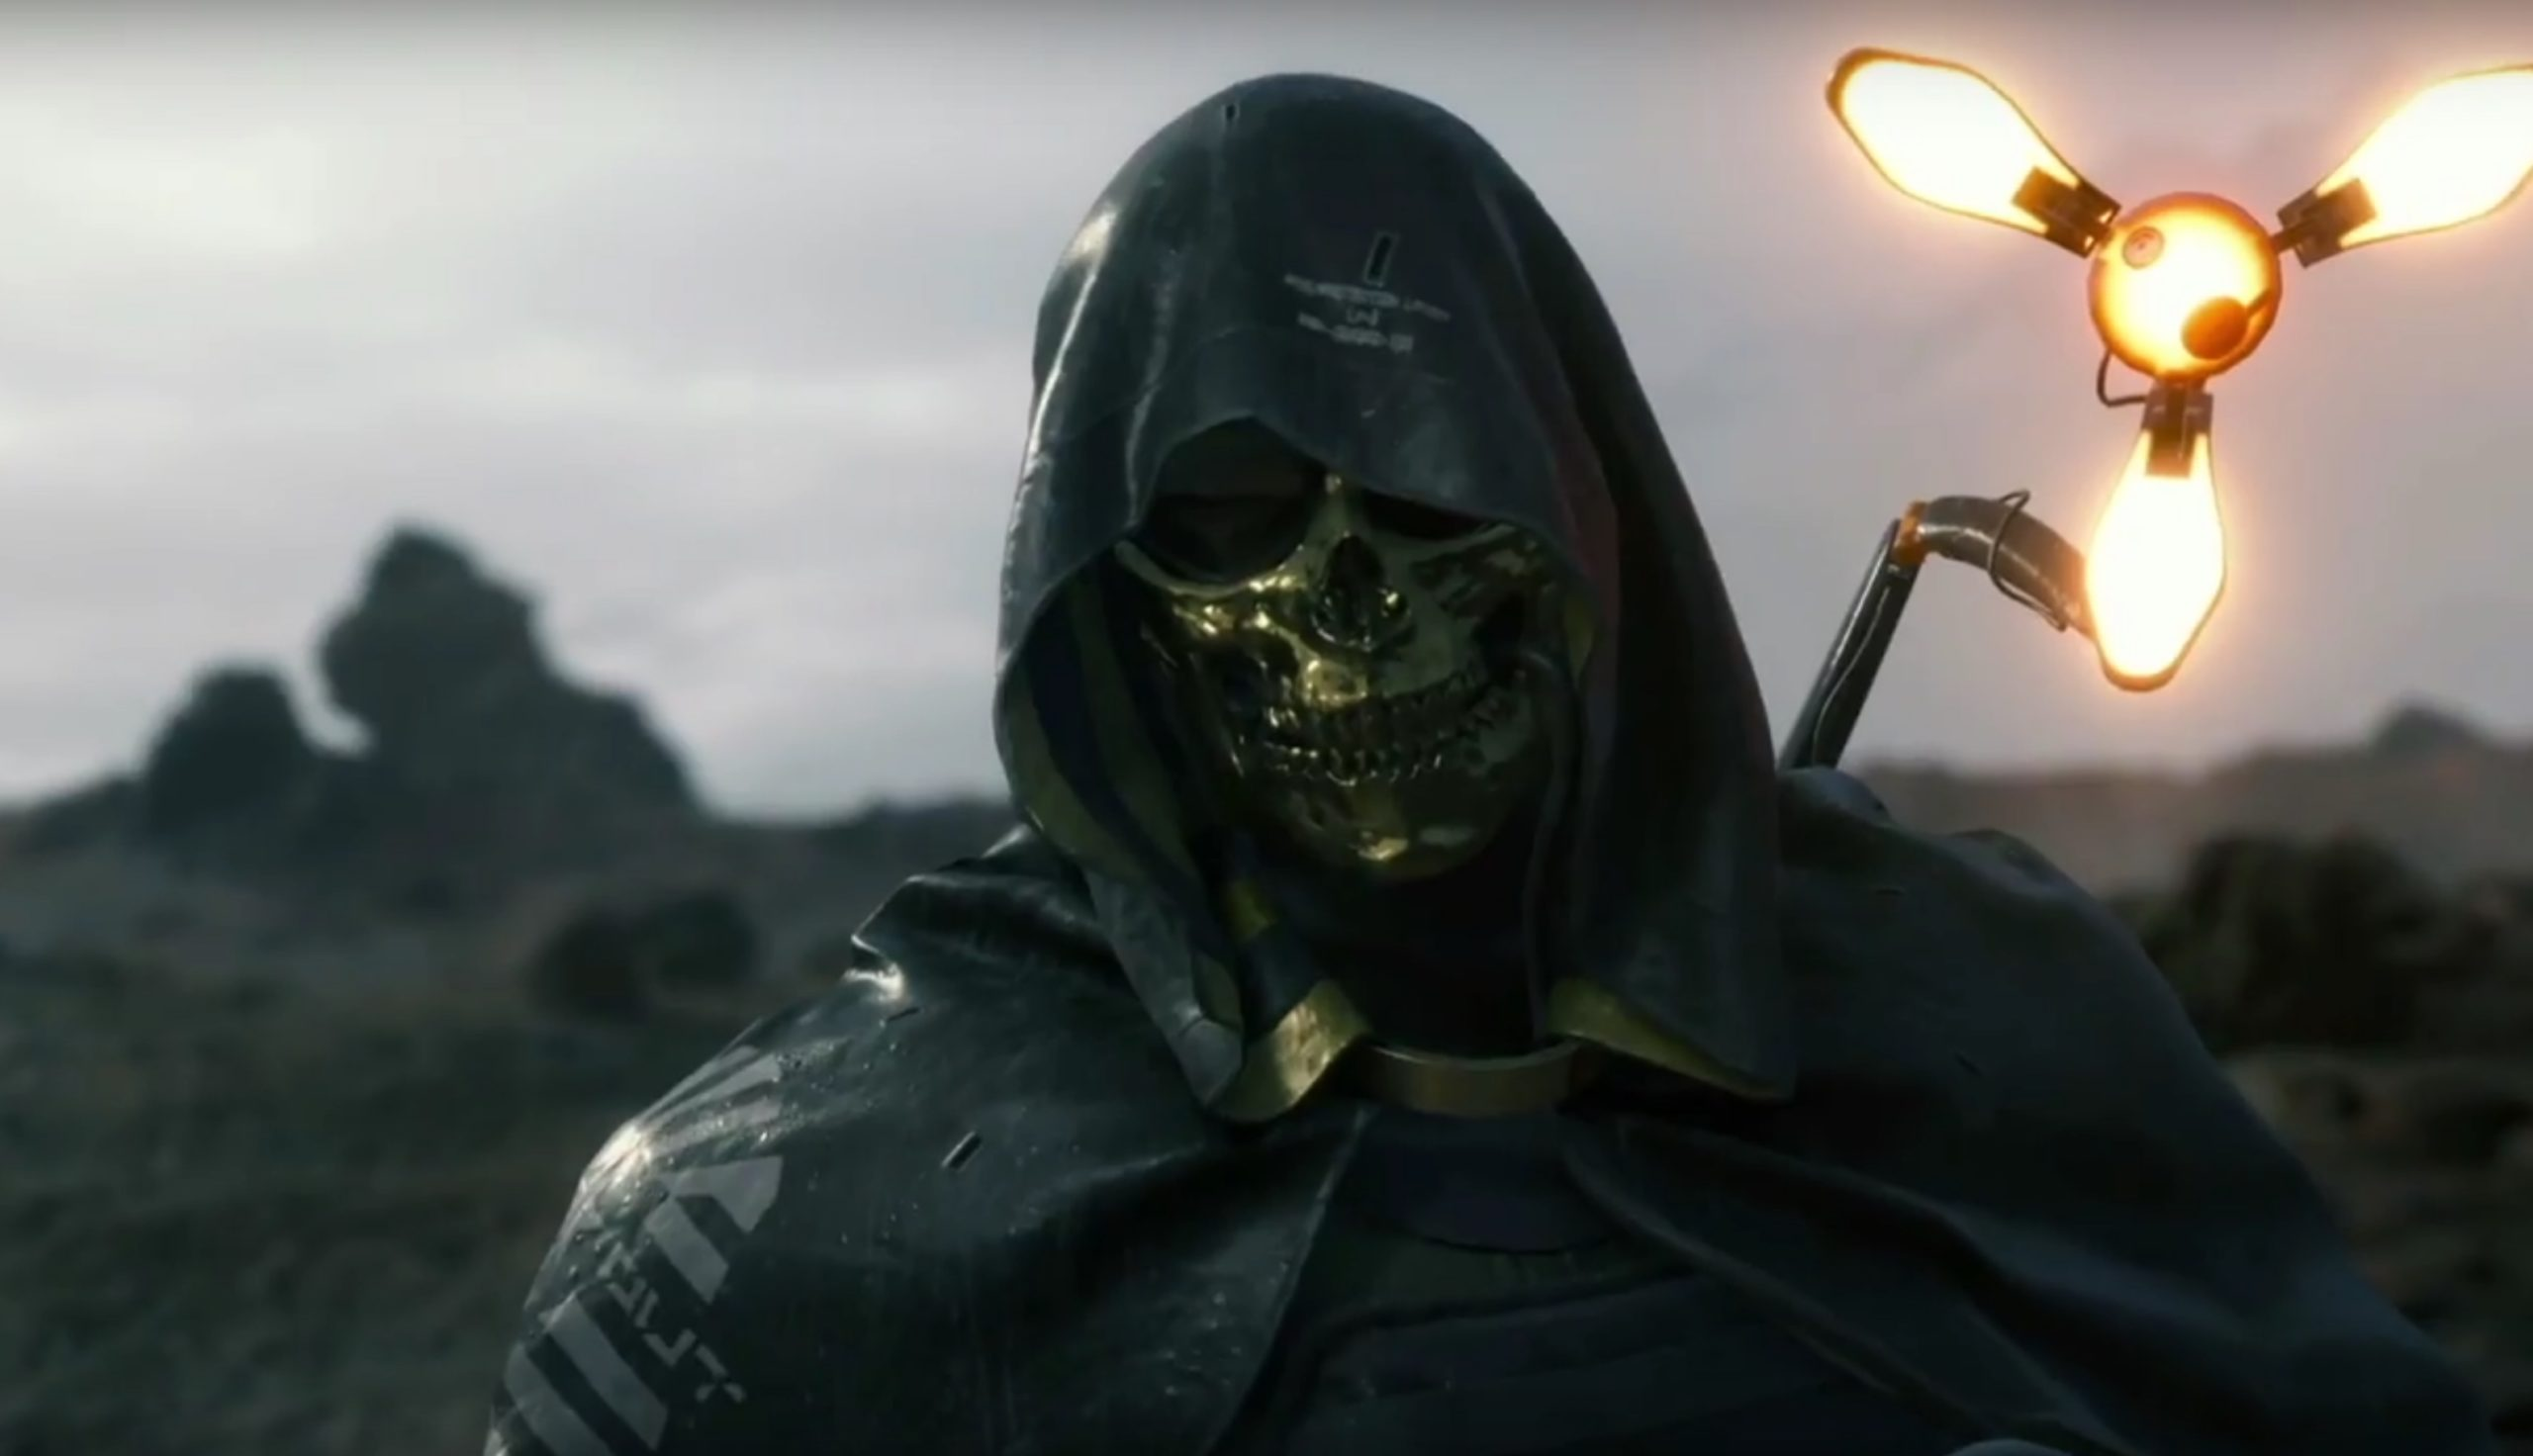 Weekly Trailer Round-Up: Death Stranding, Assassin's Creed & More